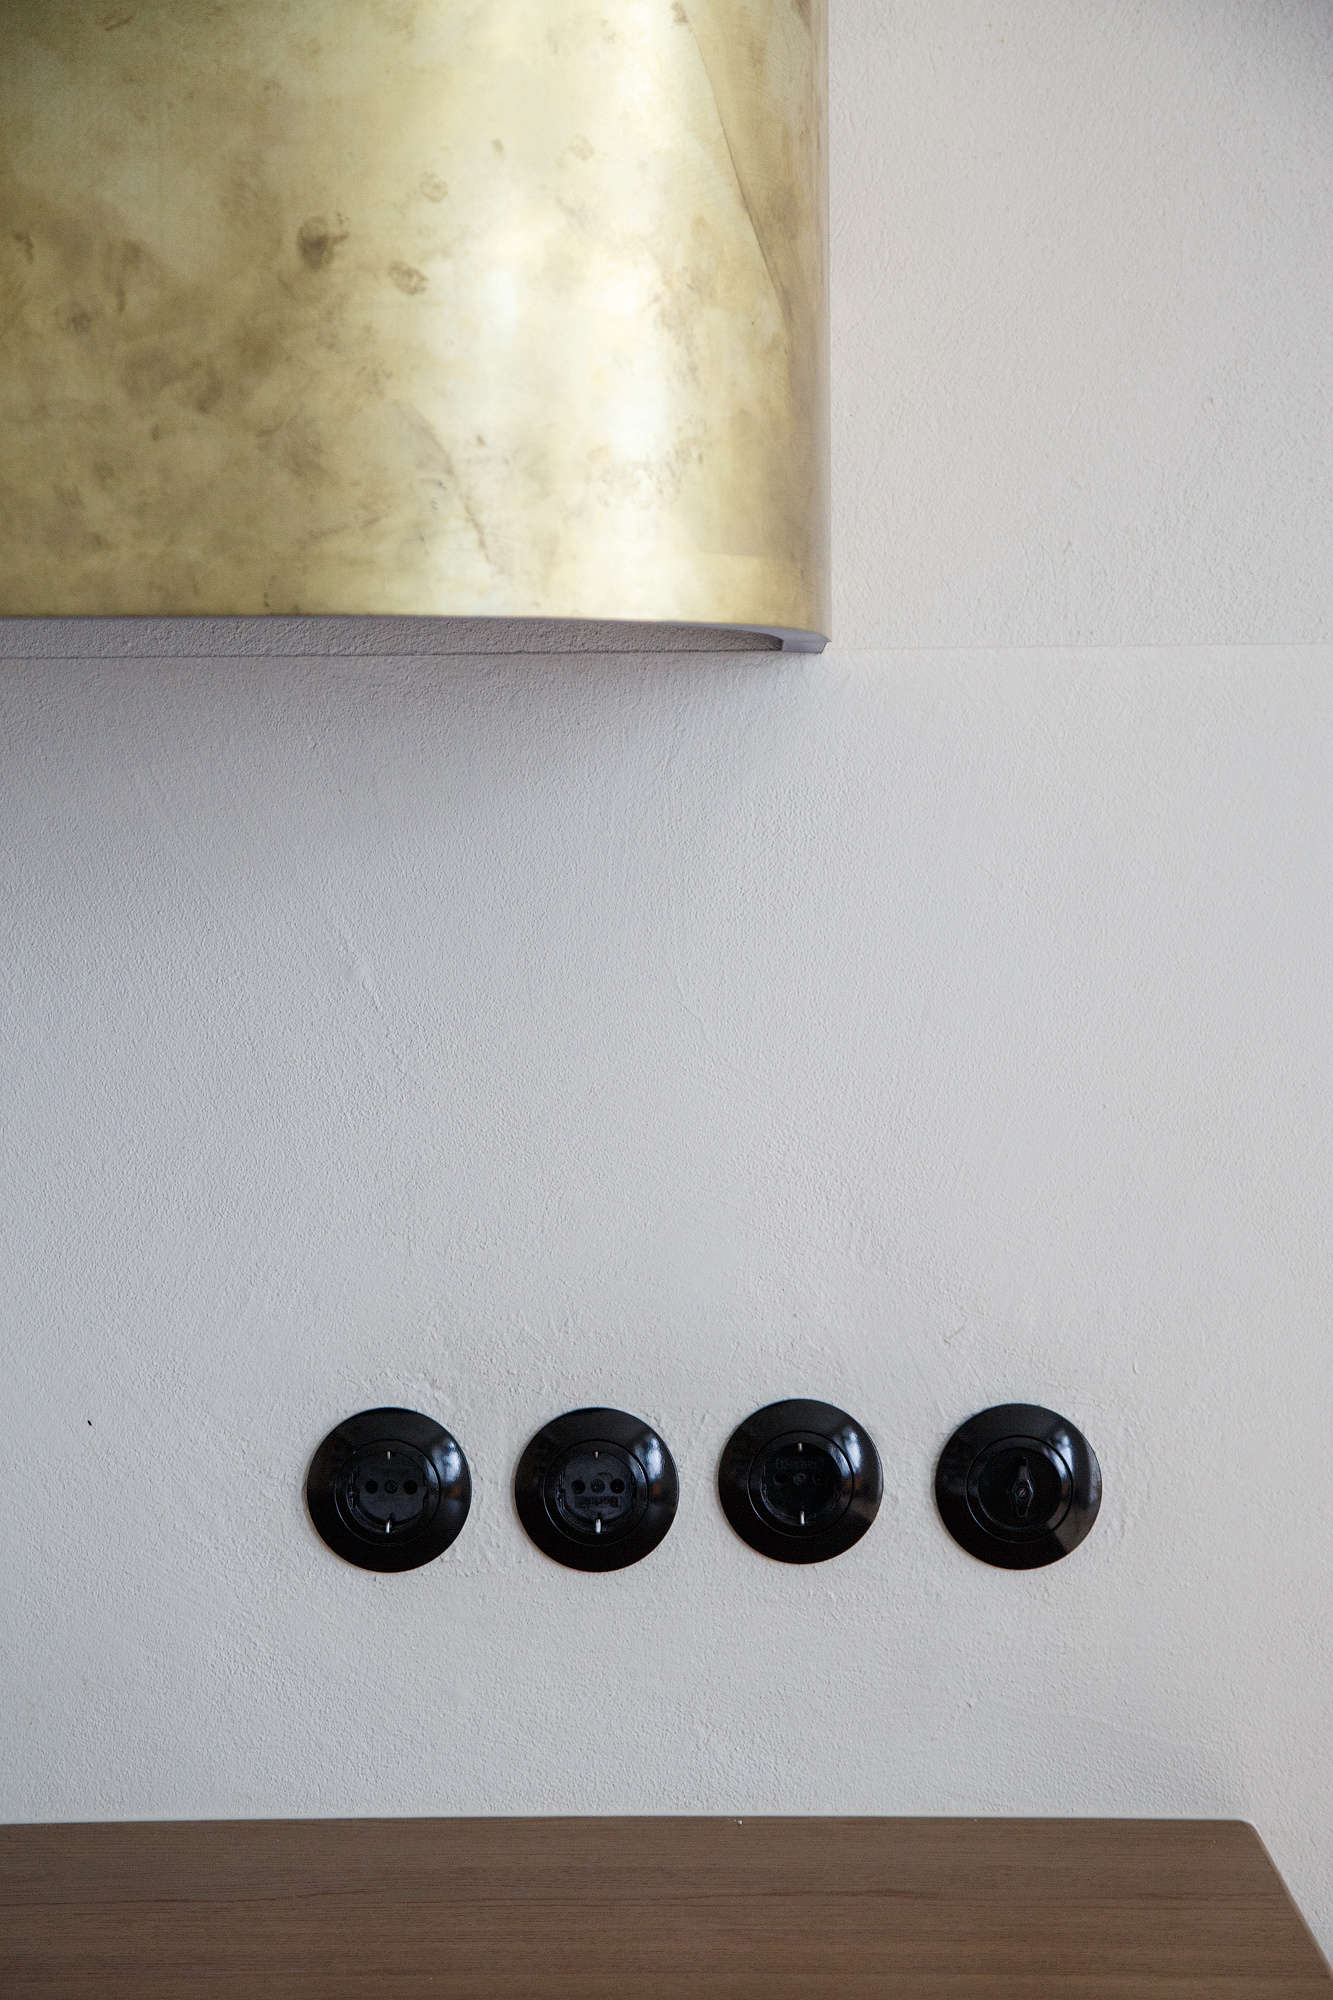 The black bakelite electrical outlets and light switches are from Berker of Germany's Bauhaus-inspired Serie 1930 line.